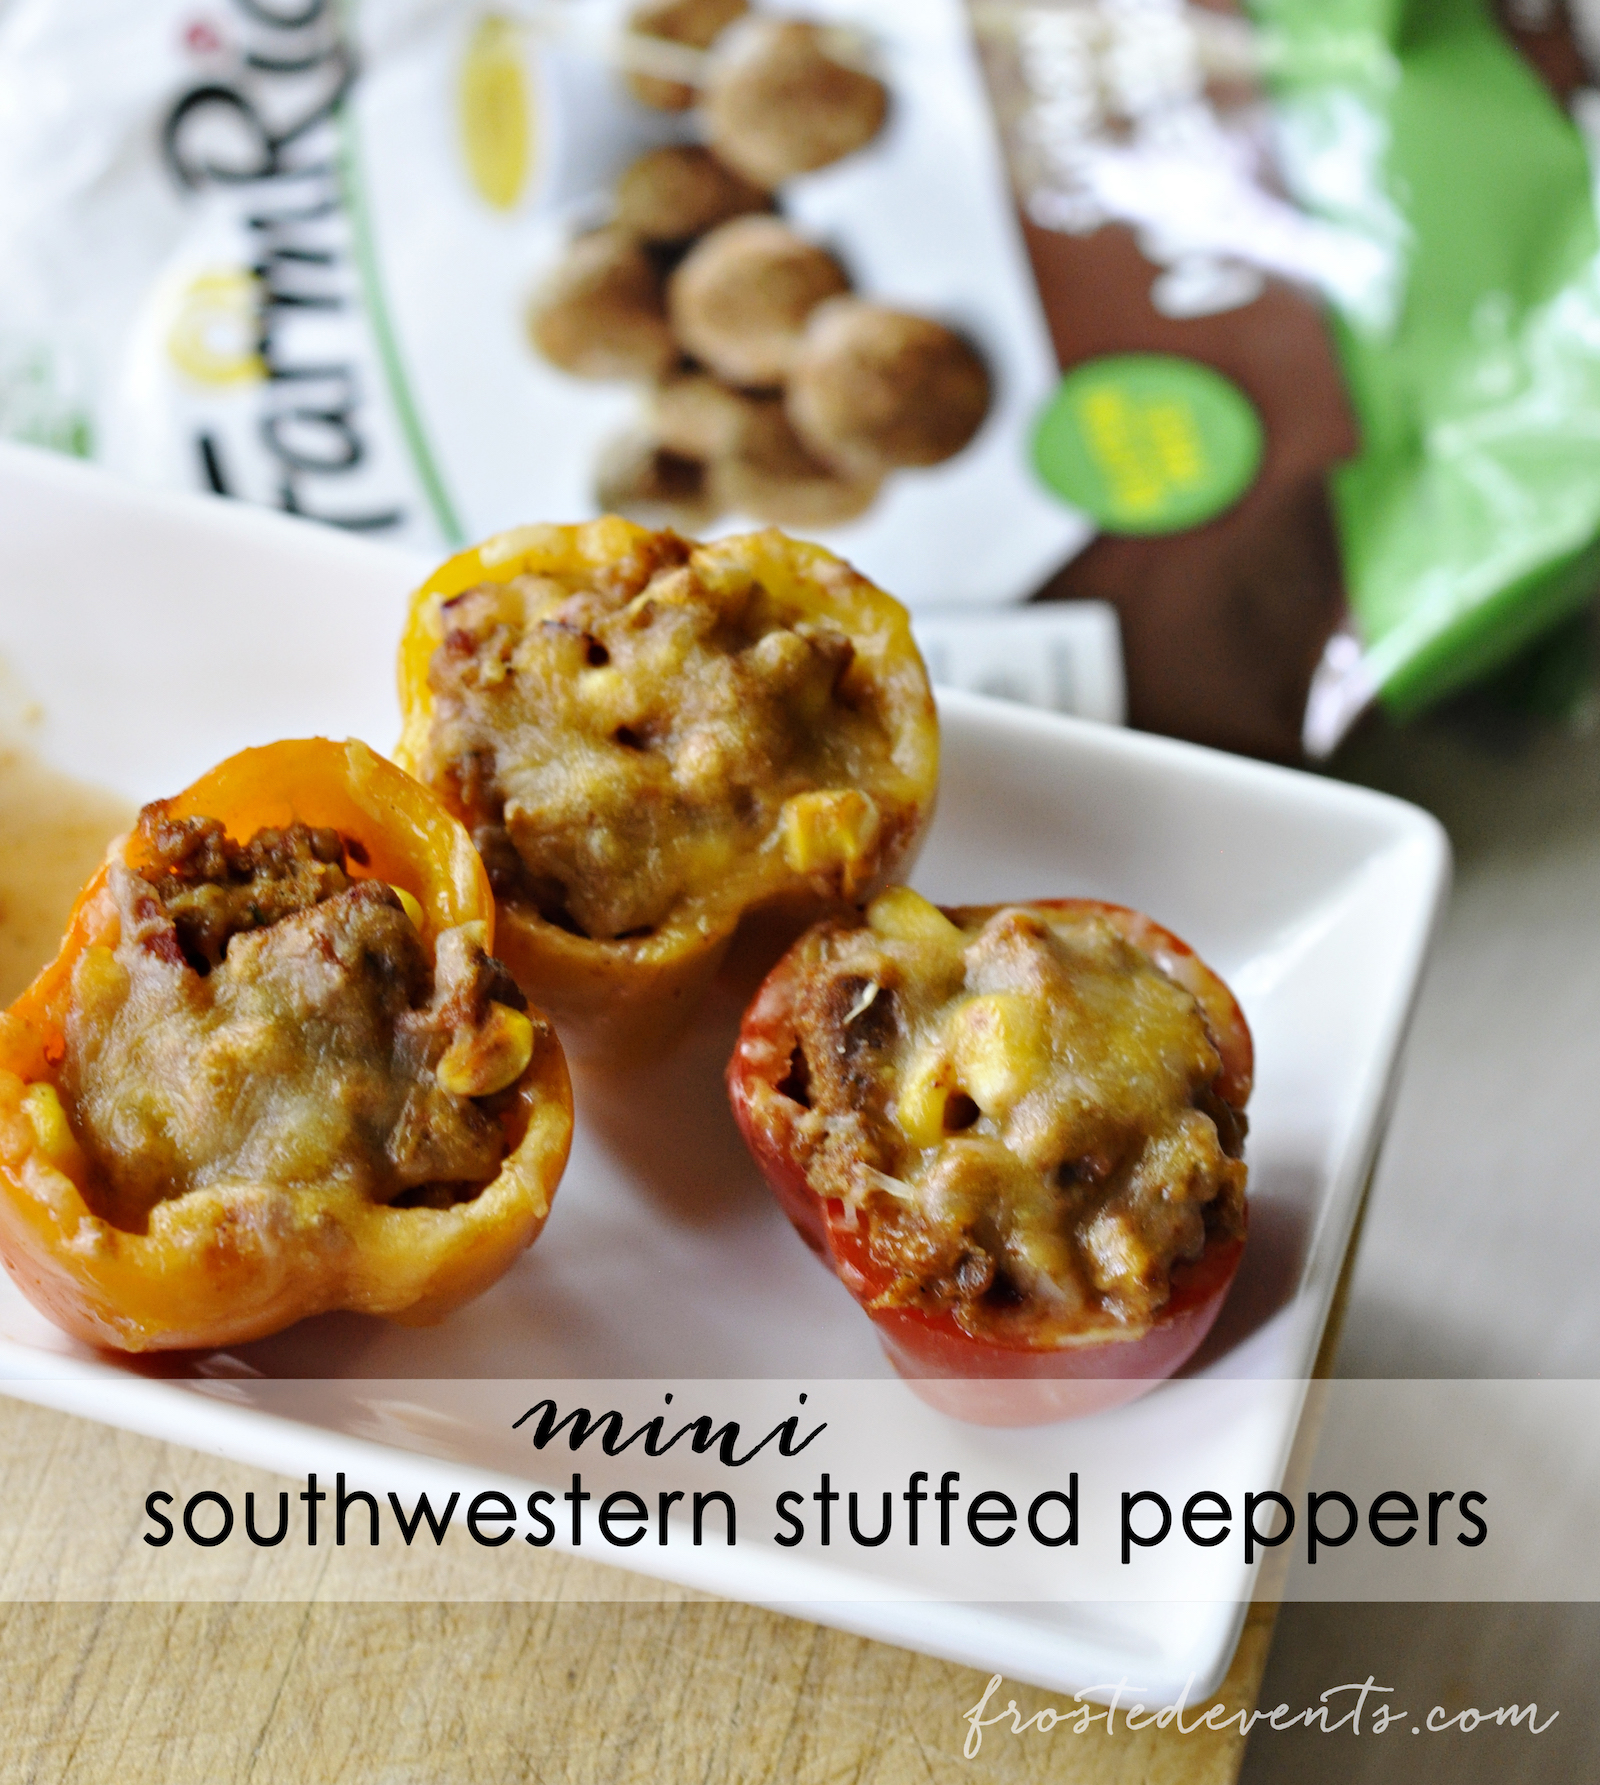 Party Recipes- Mini Southwestern Stuffed Peppers Recipe - Perfect Football Party Food, Appetizer or Snack Idea #recipe